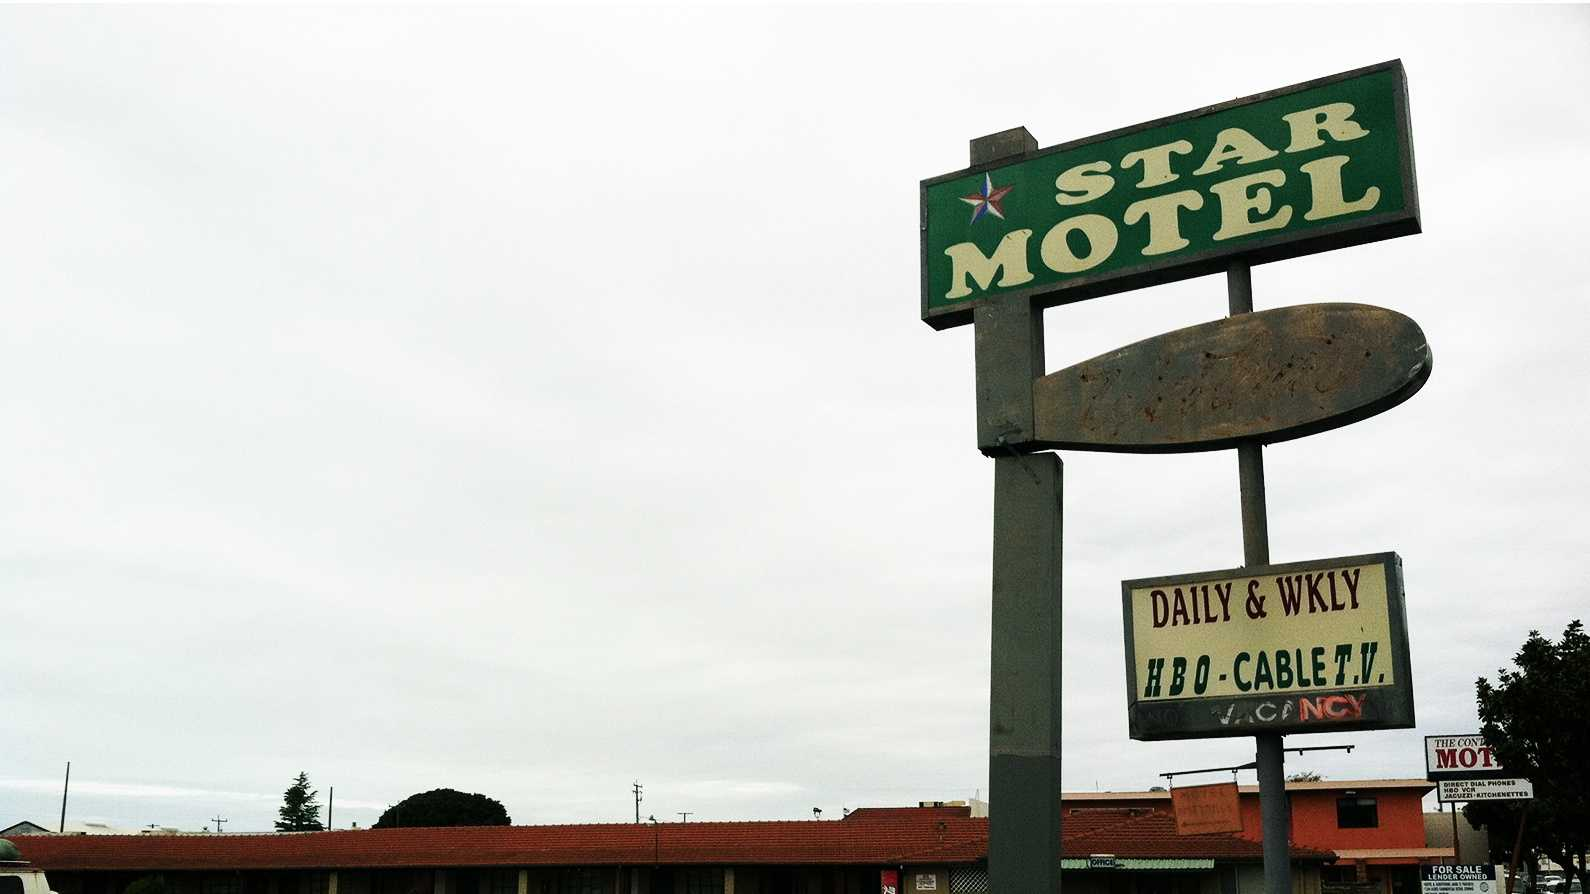 The Star Motel is located at 1149 N. Main St. in Salinas.